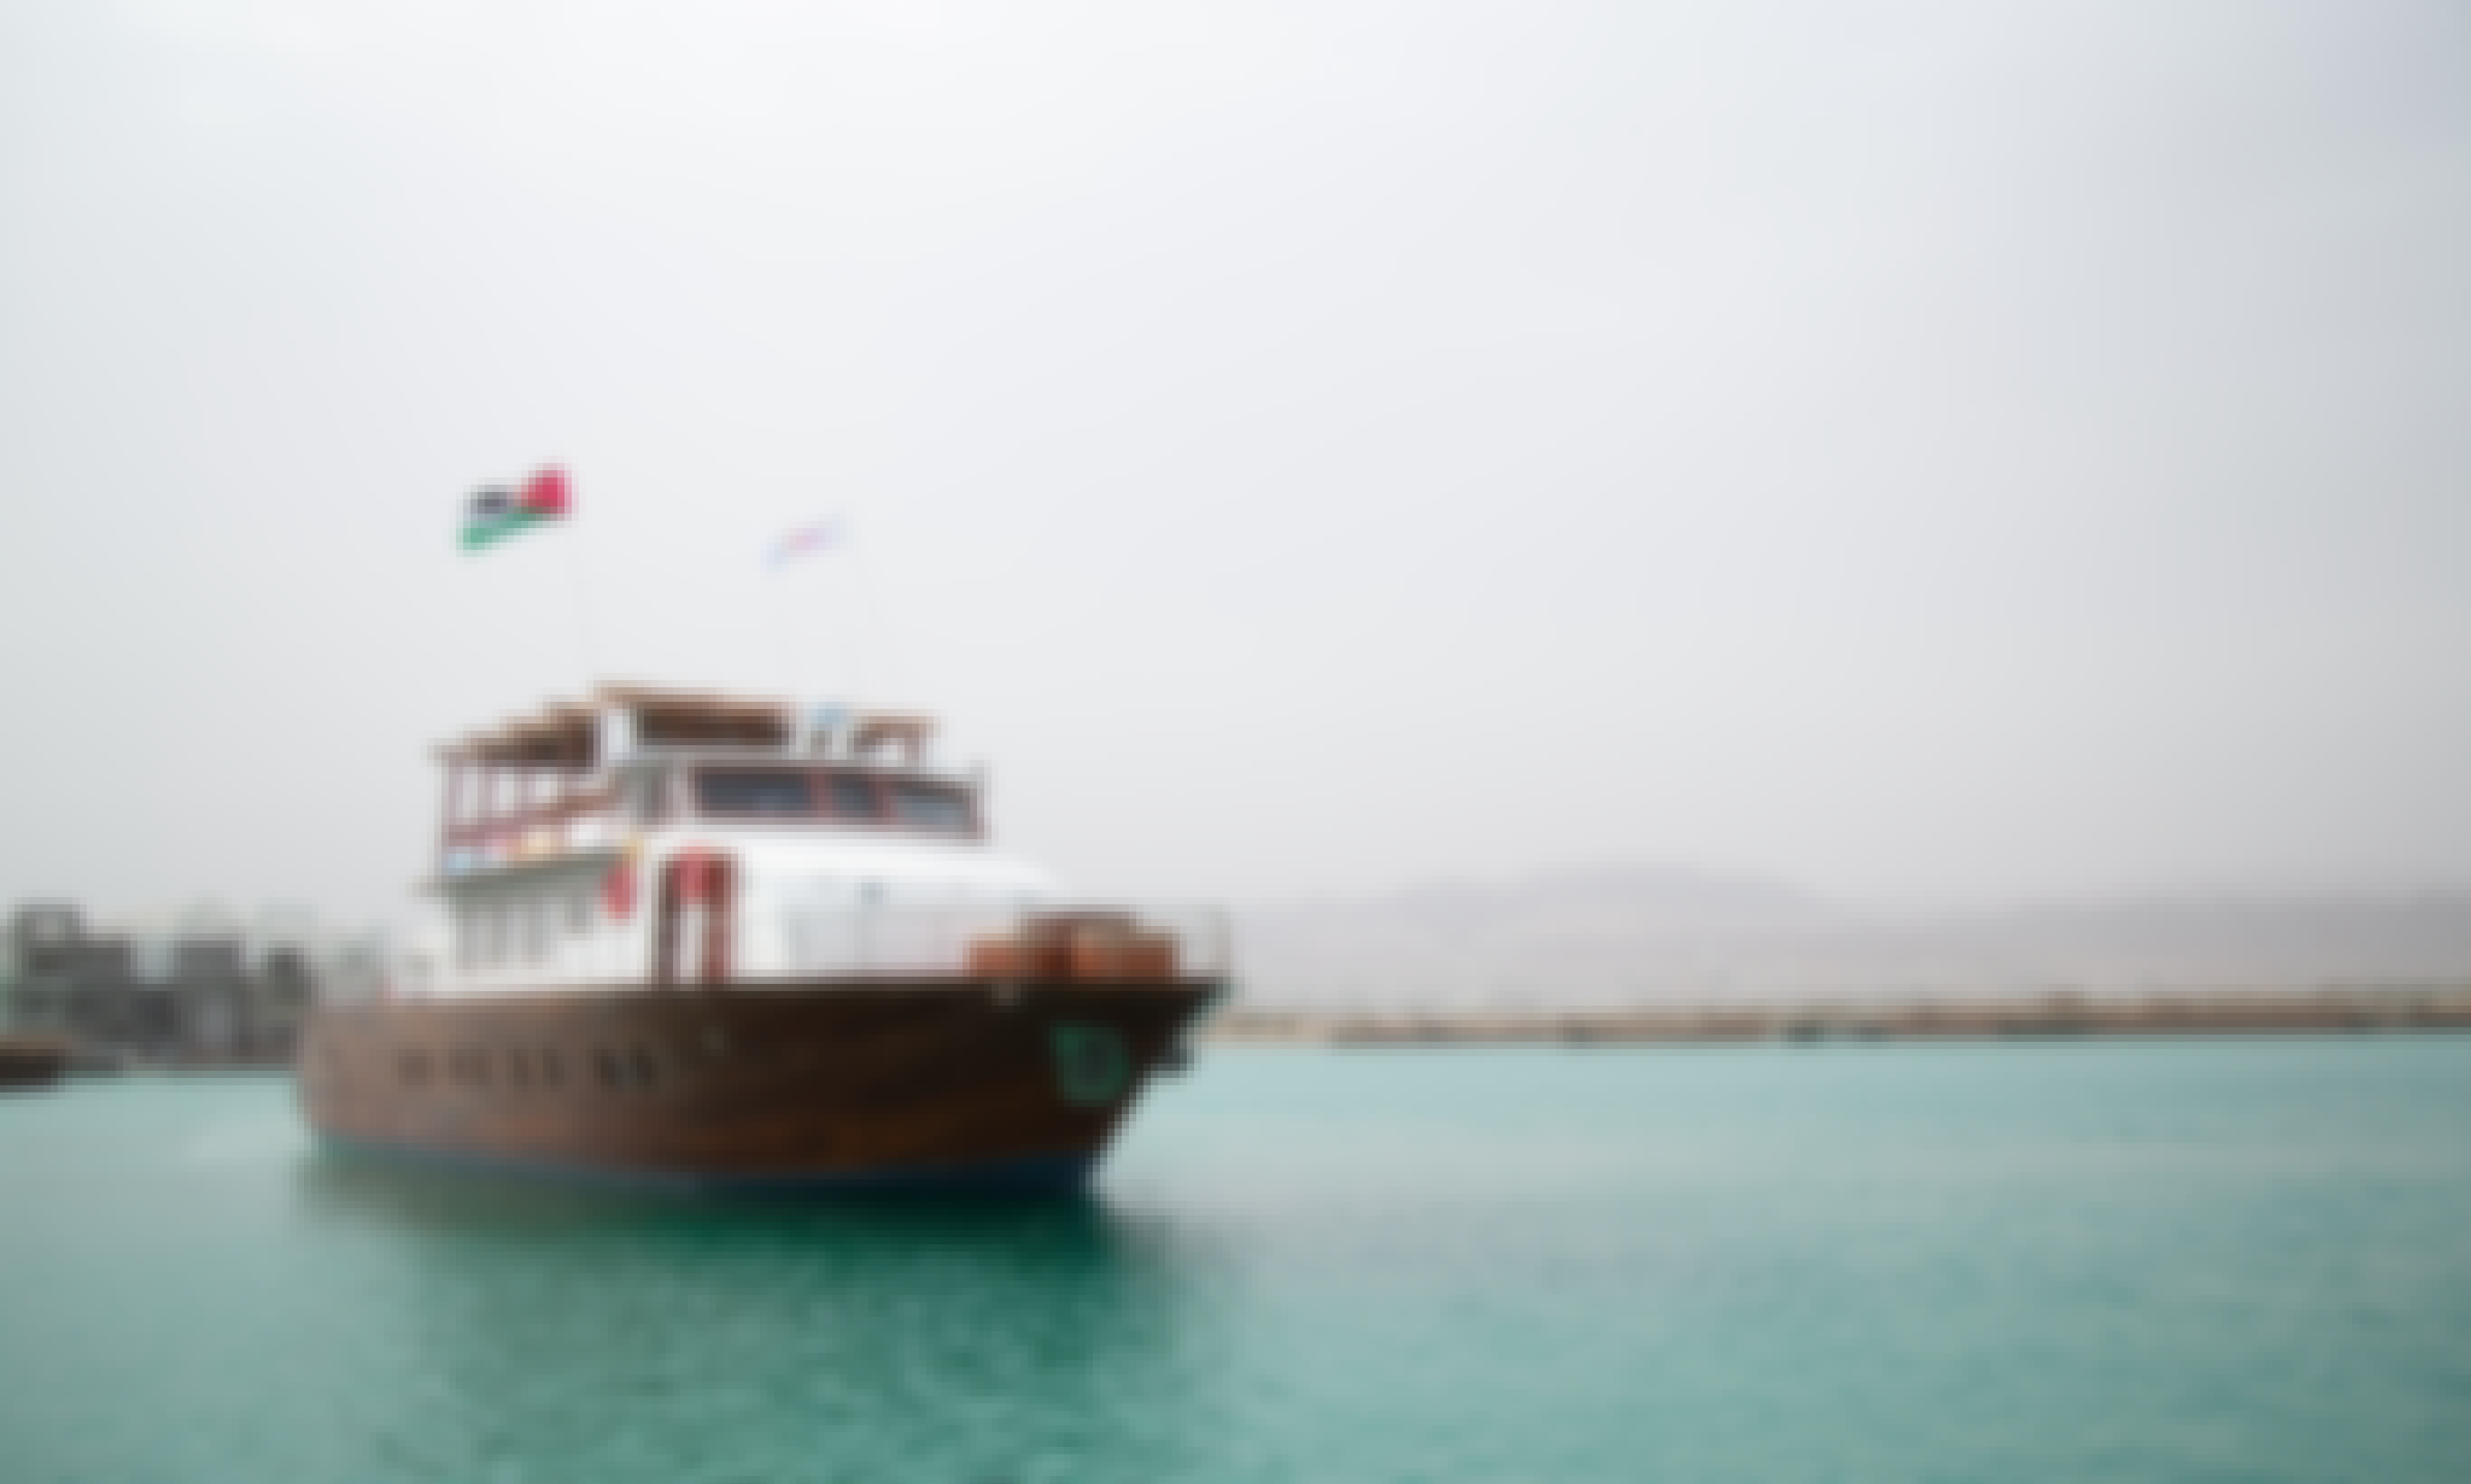 Breeze Boat in Red Sea, Enjoy your Lunch or Dinner, Your Sunny Day or Sun Set Viewing onboard with Your Family, Friends or Colleges time in Aqaba, Jordan